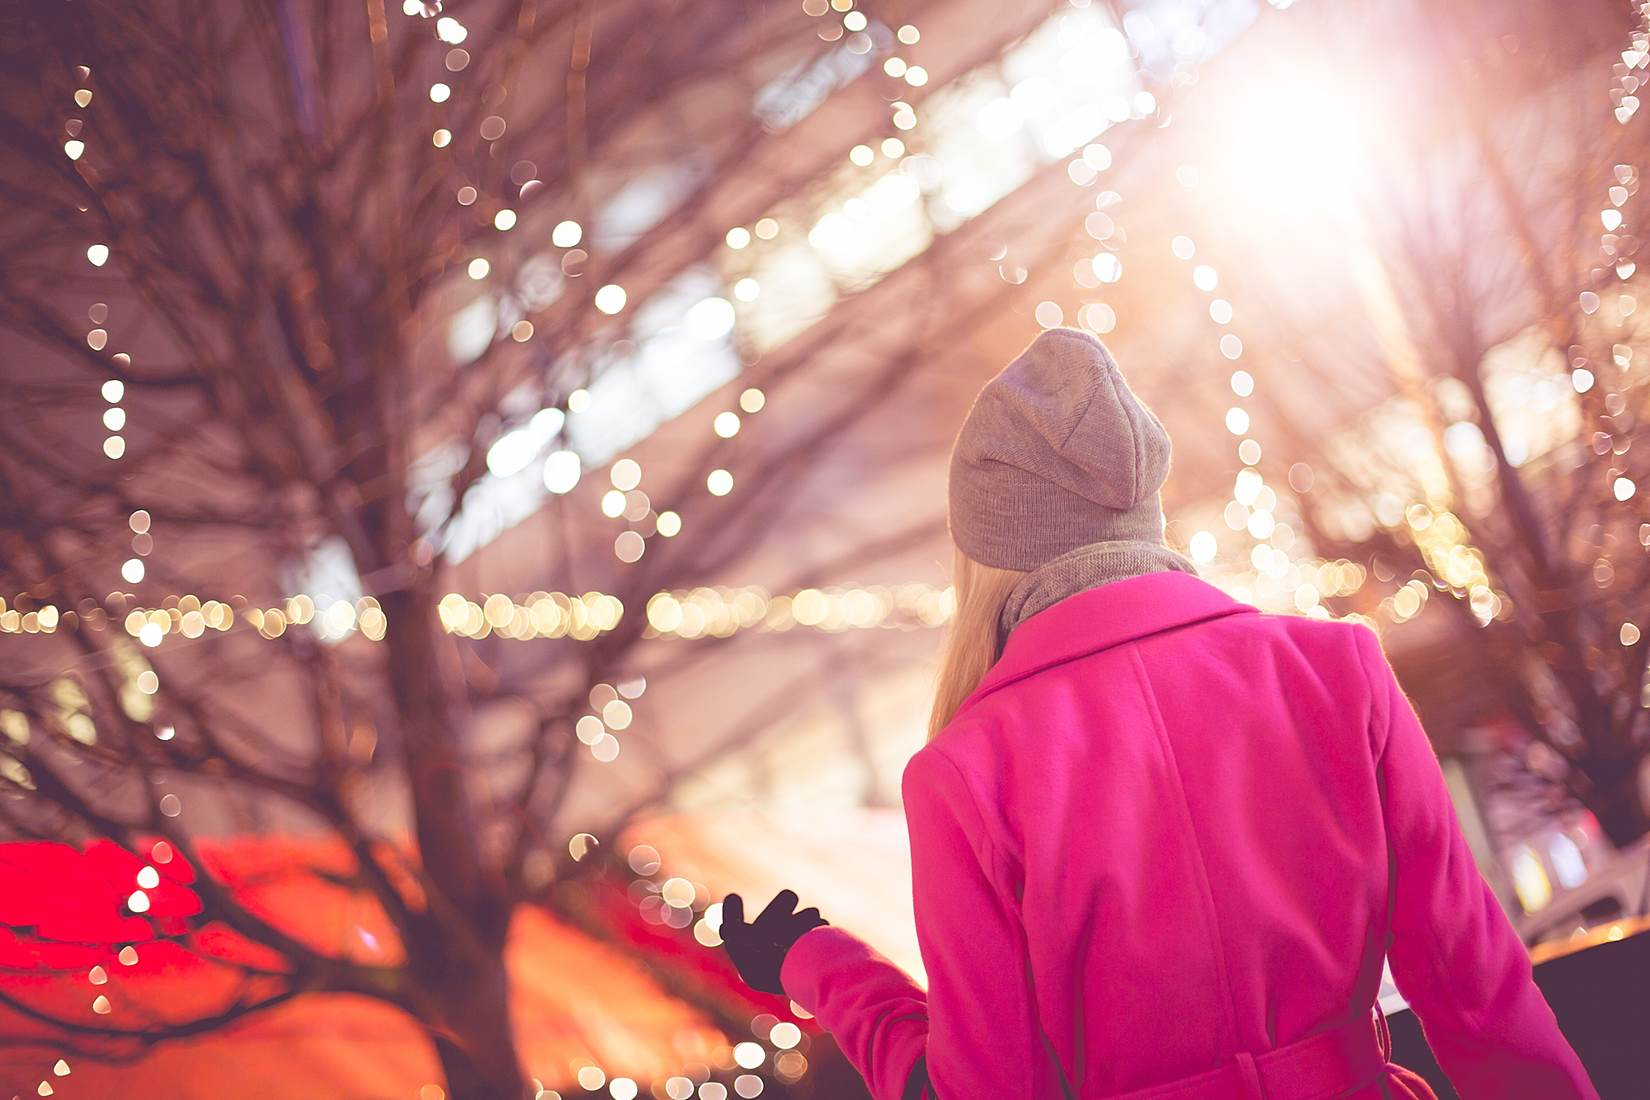 The holidays can be a magical time, but they also bring holiday stress. These 5 tips help you fight off the stress and anxiety of the holiday season.